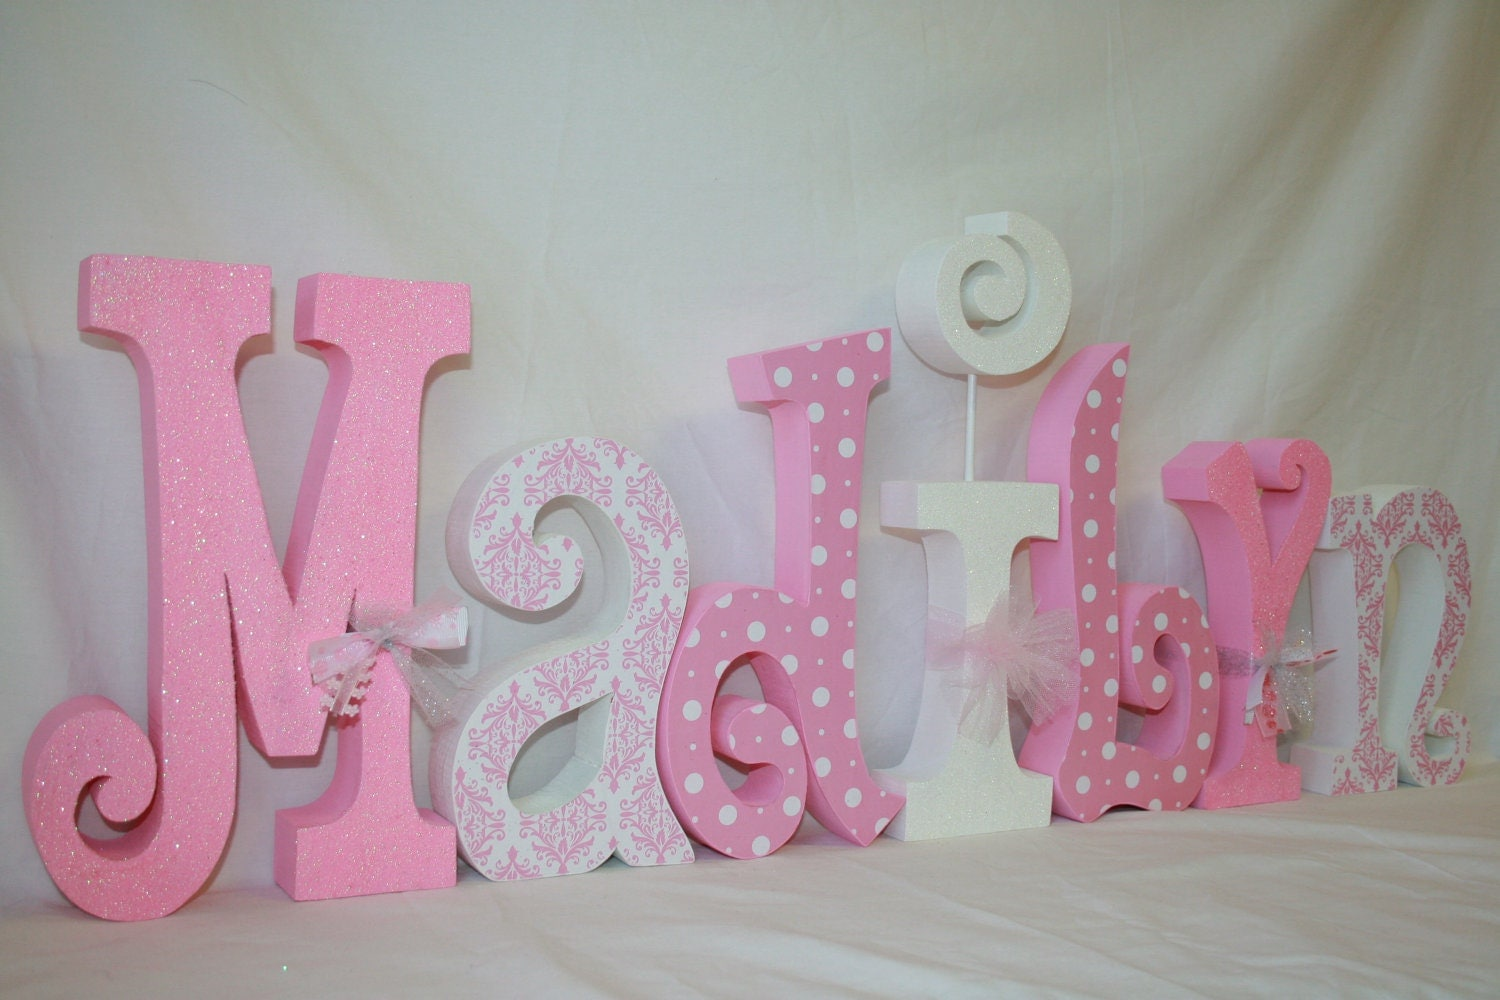 Best Girl Decor Pink And White White Polka Dots 7 Letter Set This Month